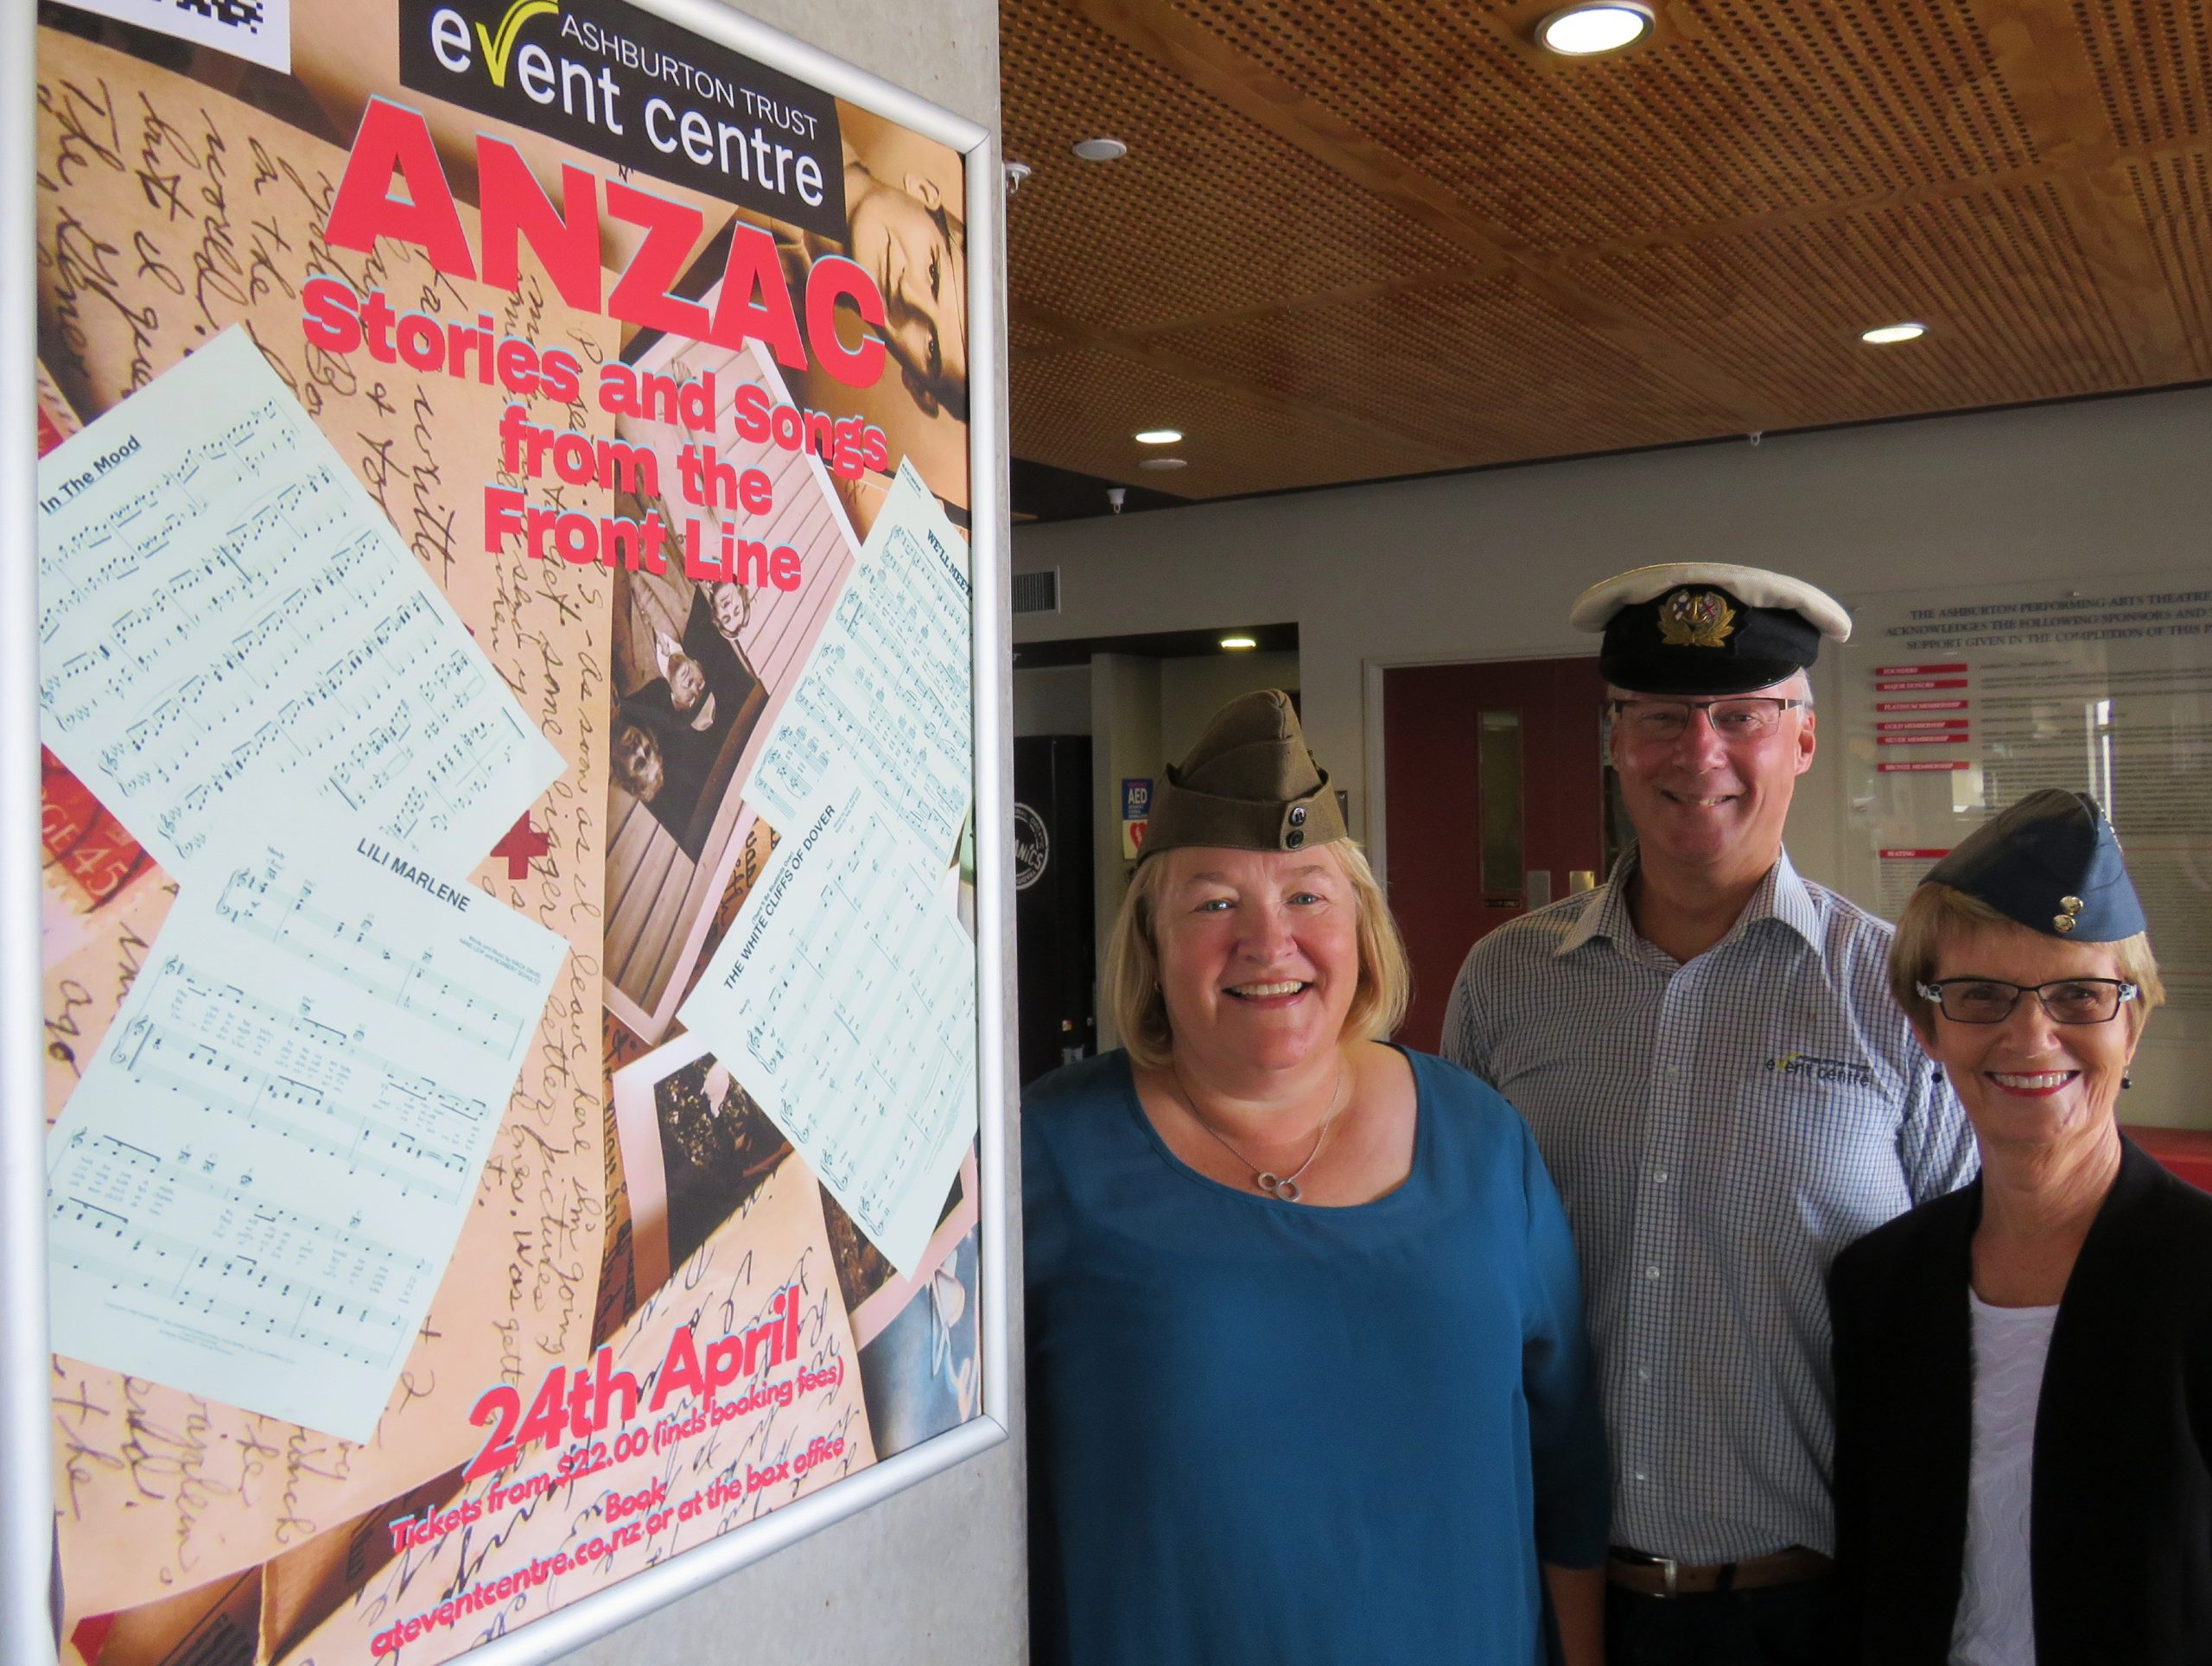 Wearing military hats and standing to attention are show compilers (from left) Sally Farr, Roger...